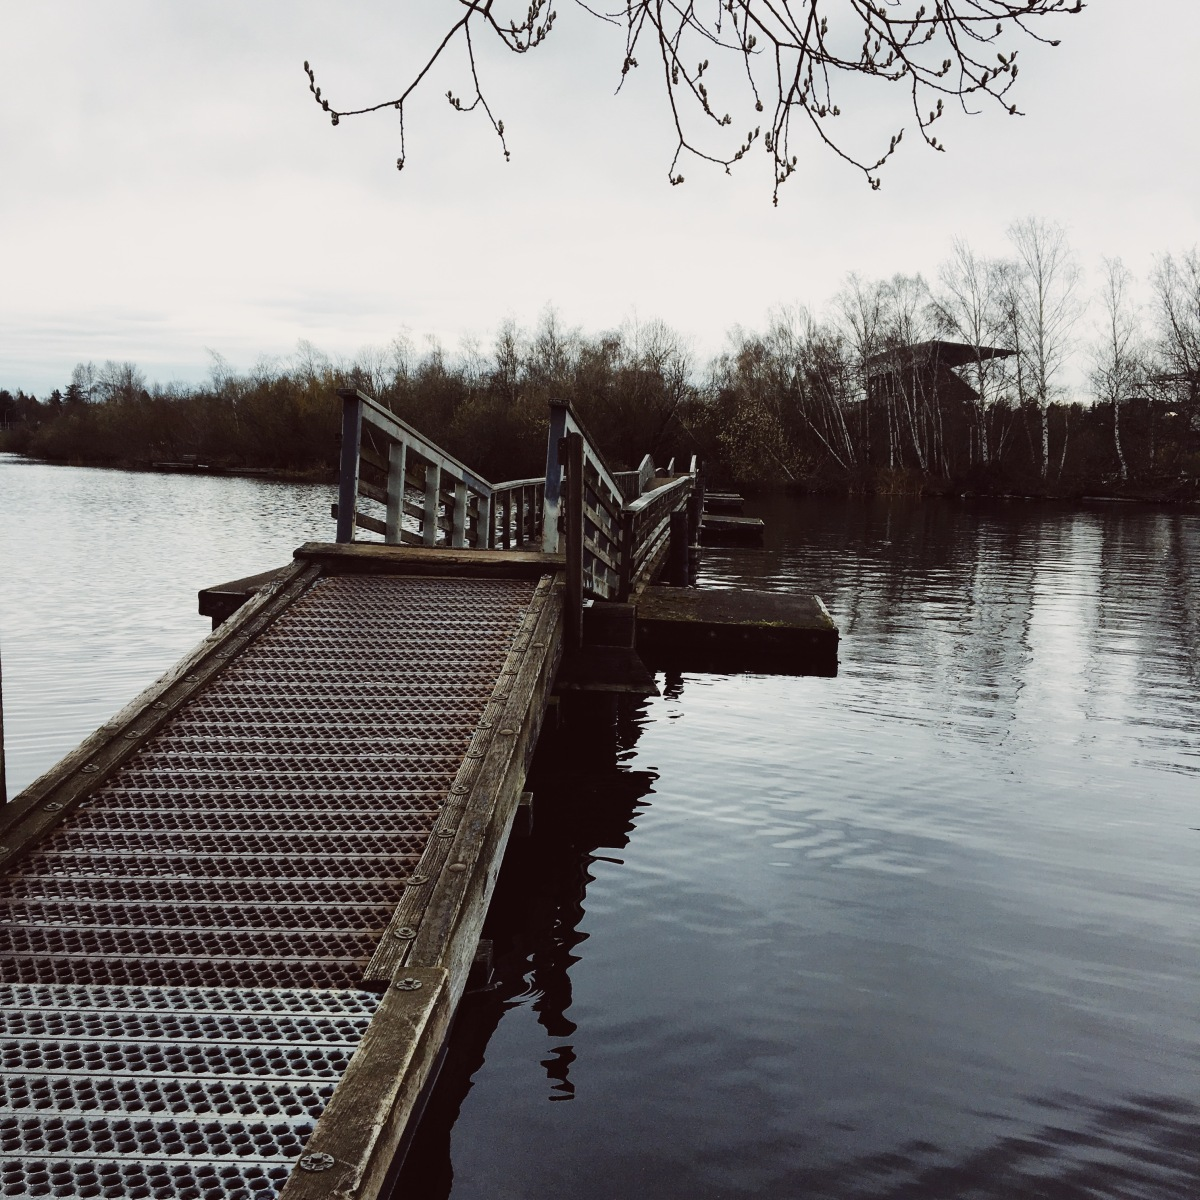 A floating walkway over Lake Washington that is part of the Arboretum Waterfront Trail near the Washington Park Arboretum in Seattle, WA